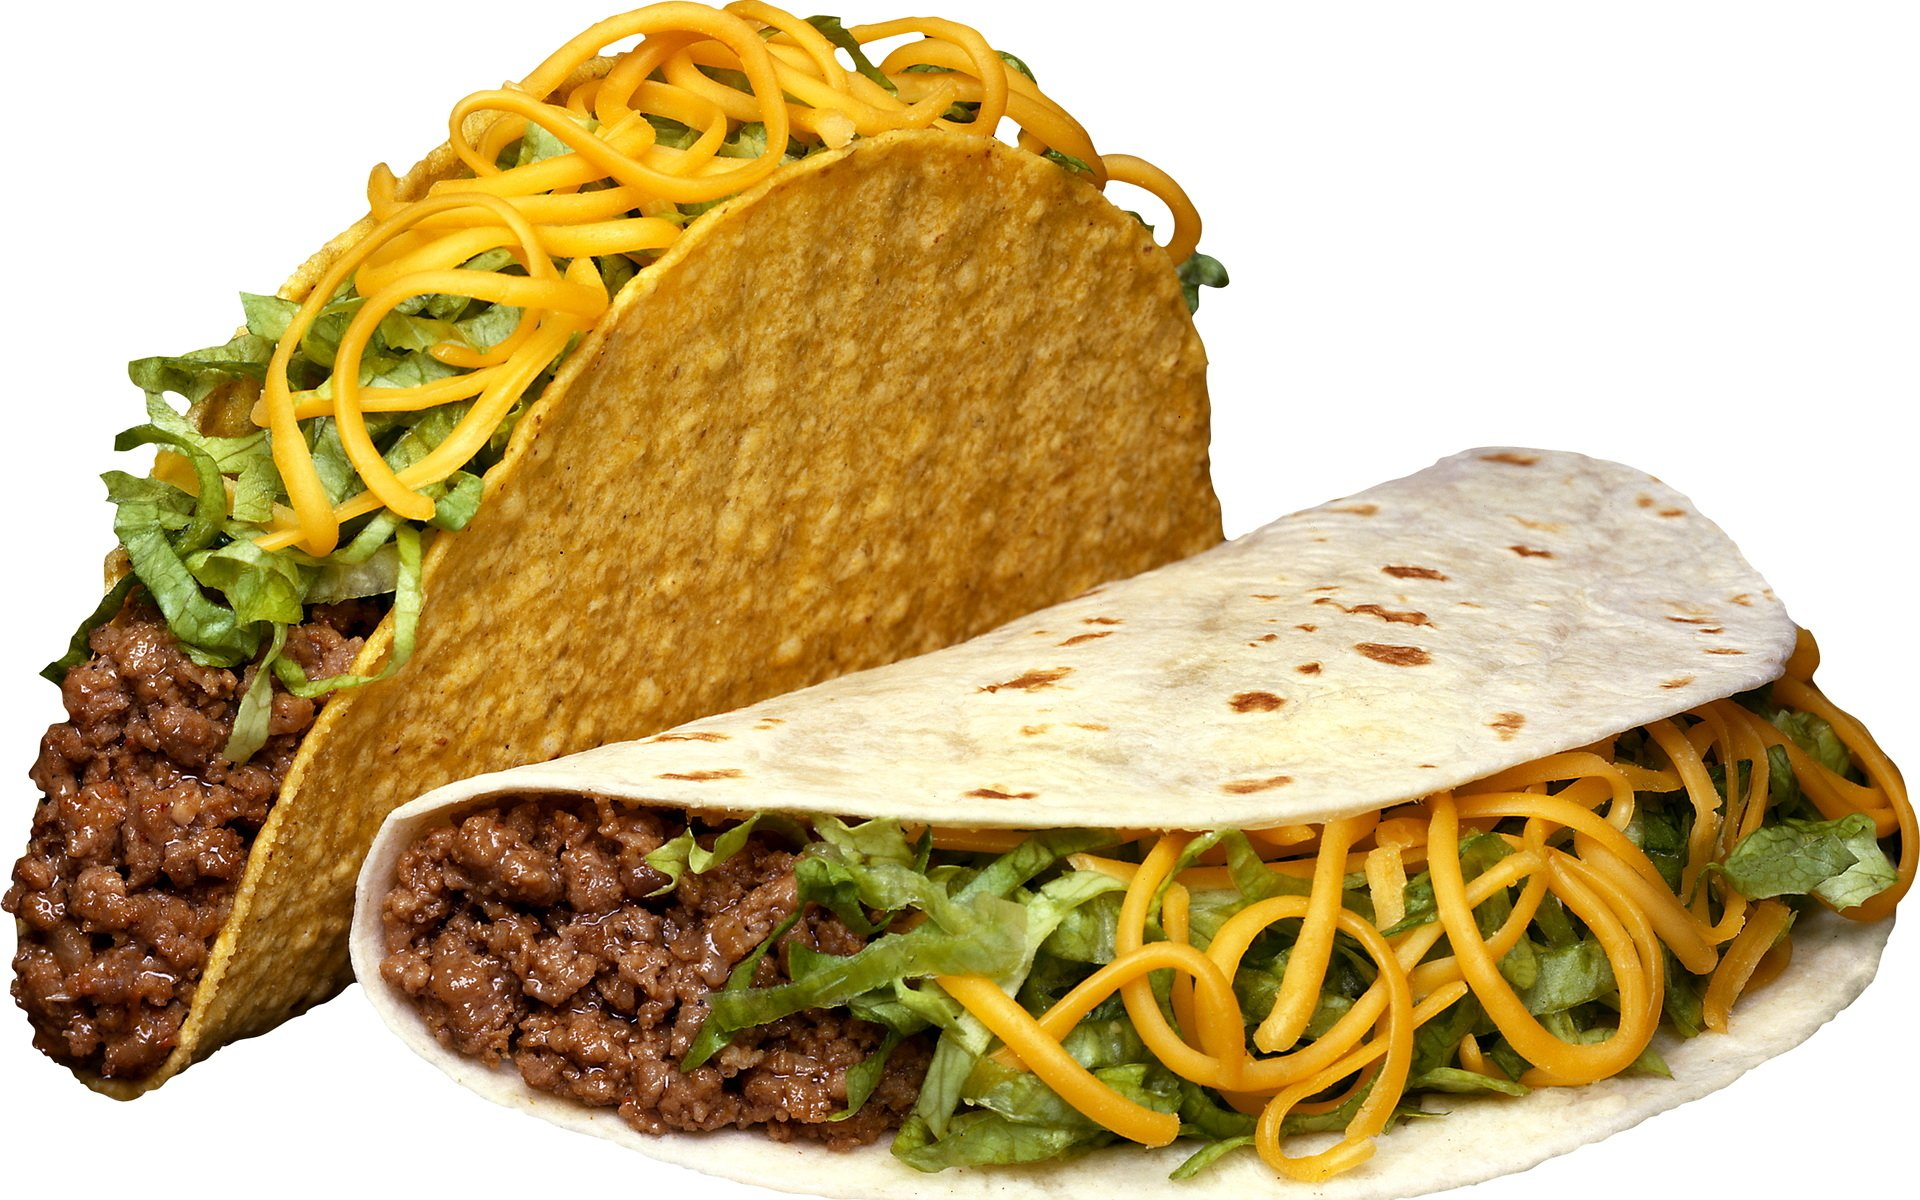 12 Taco Hd Wallpapers Background Images Wallpaper Abyss